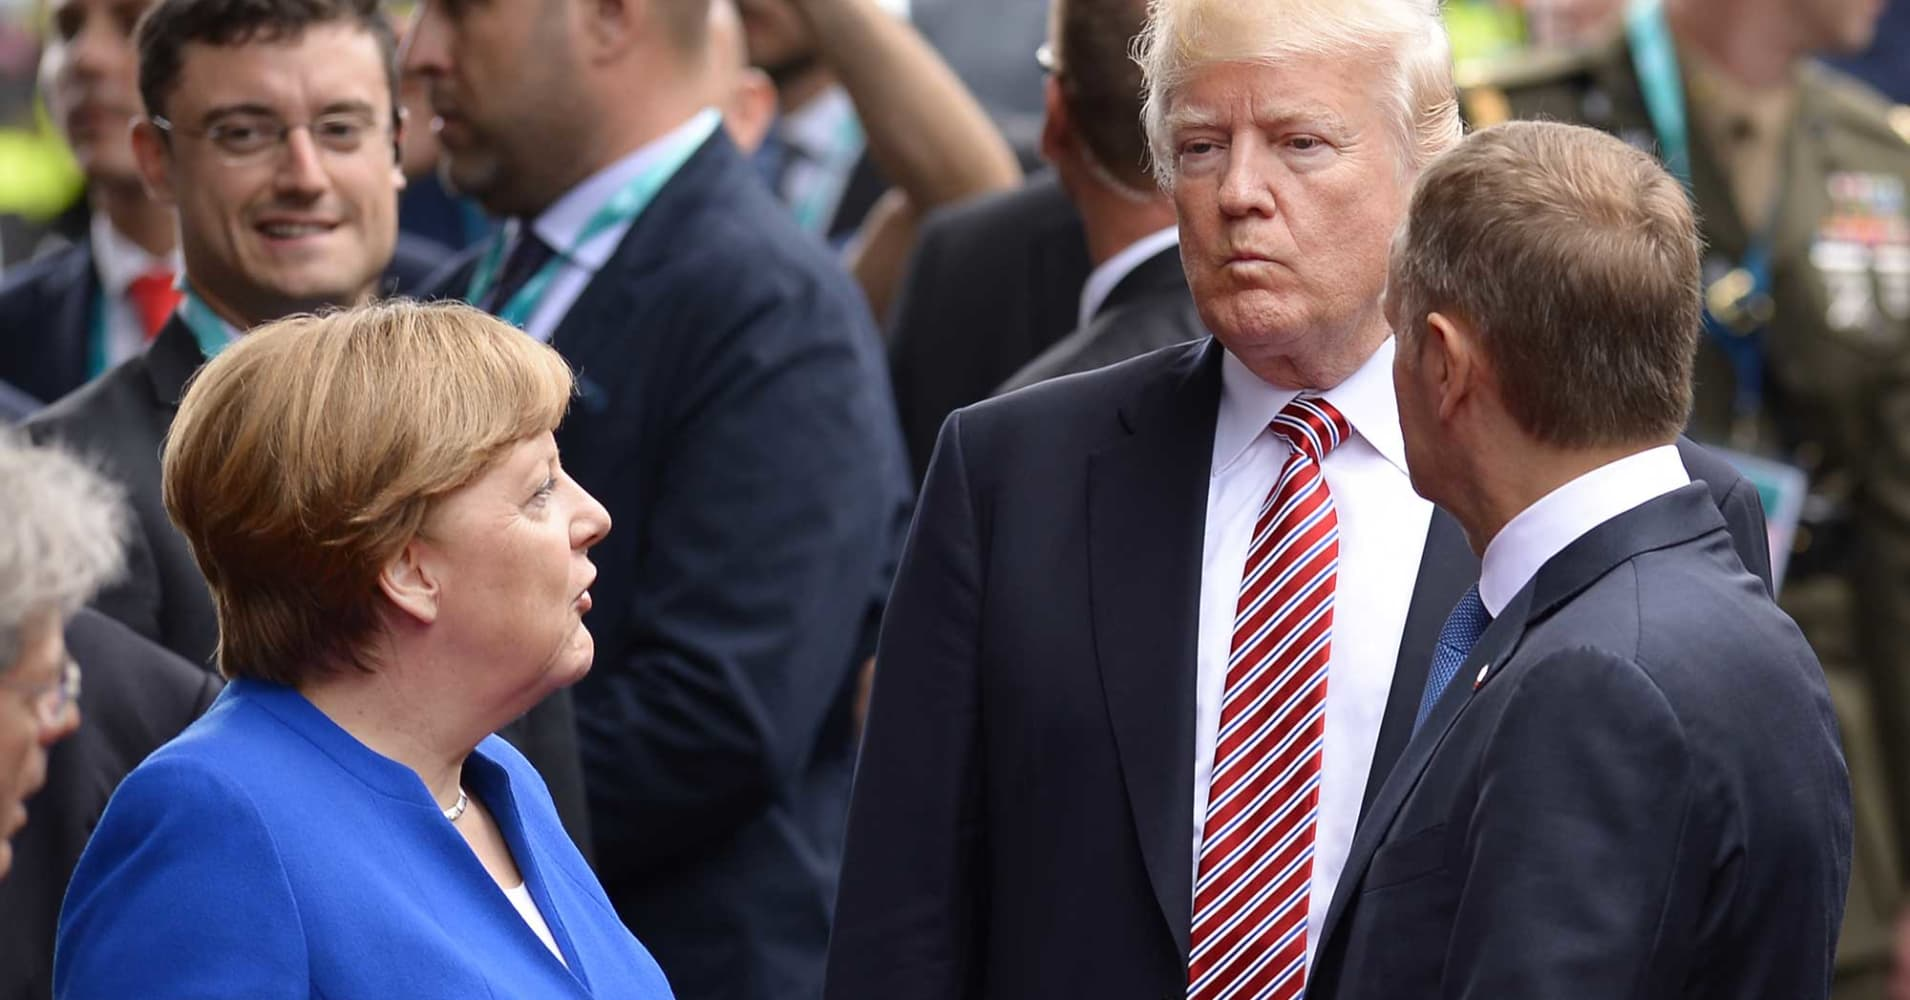 Investor confidence and America's status as the world's economic leader are at risk under Trump